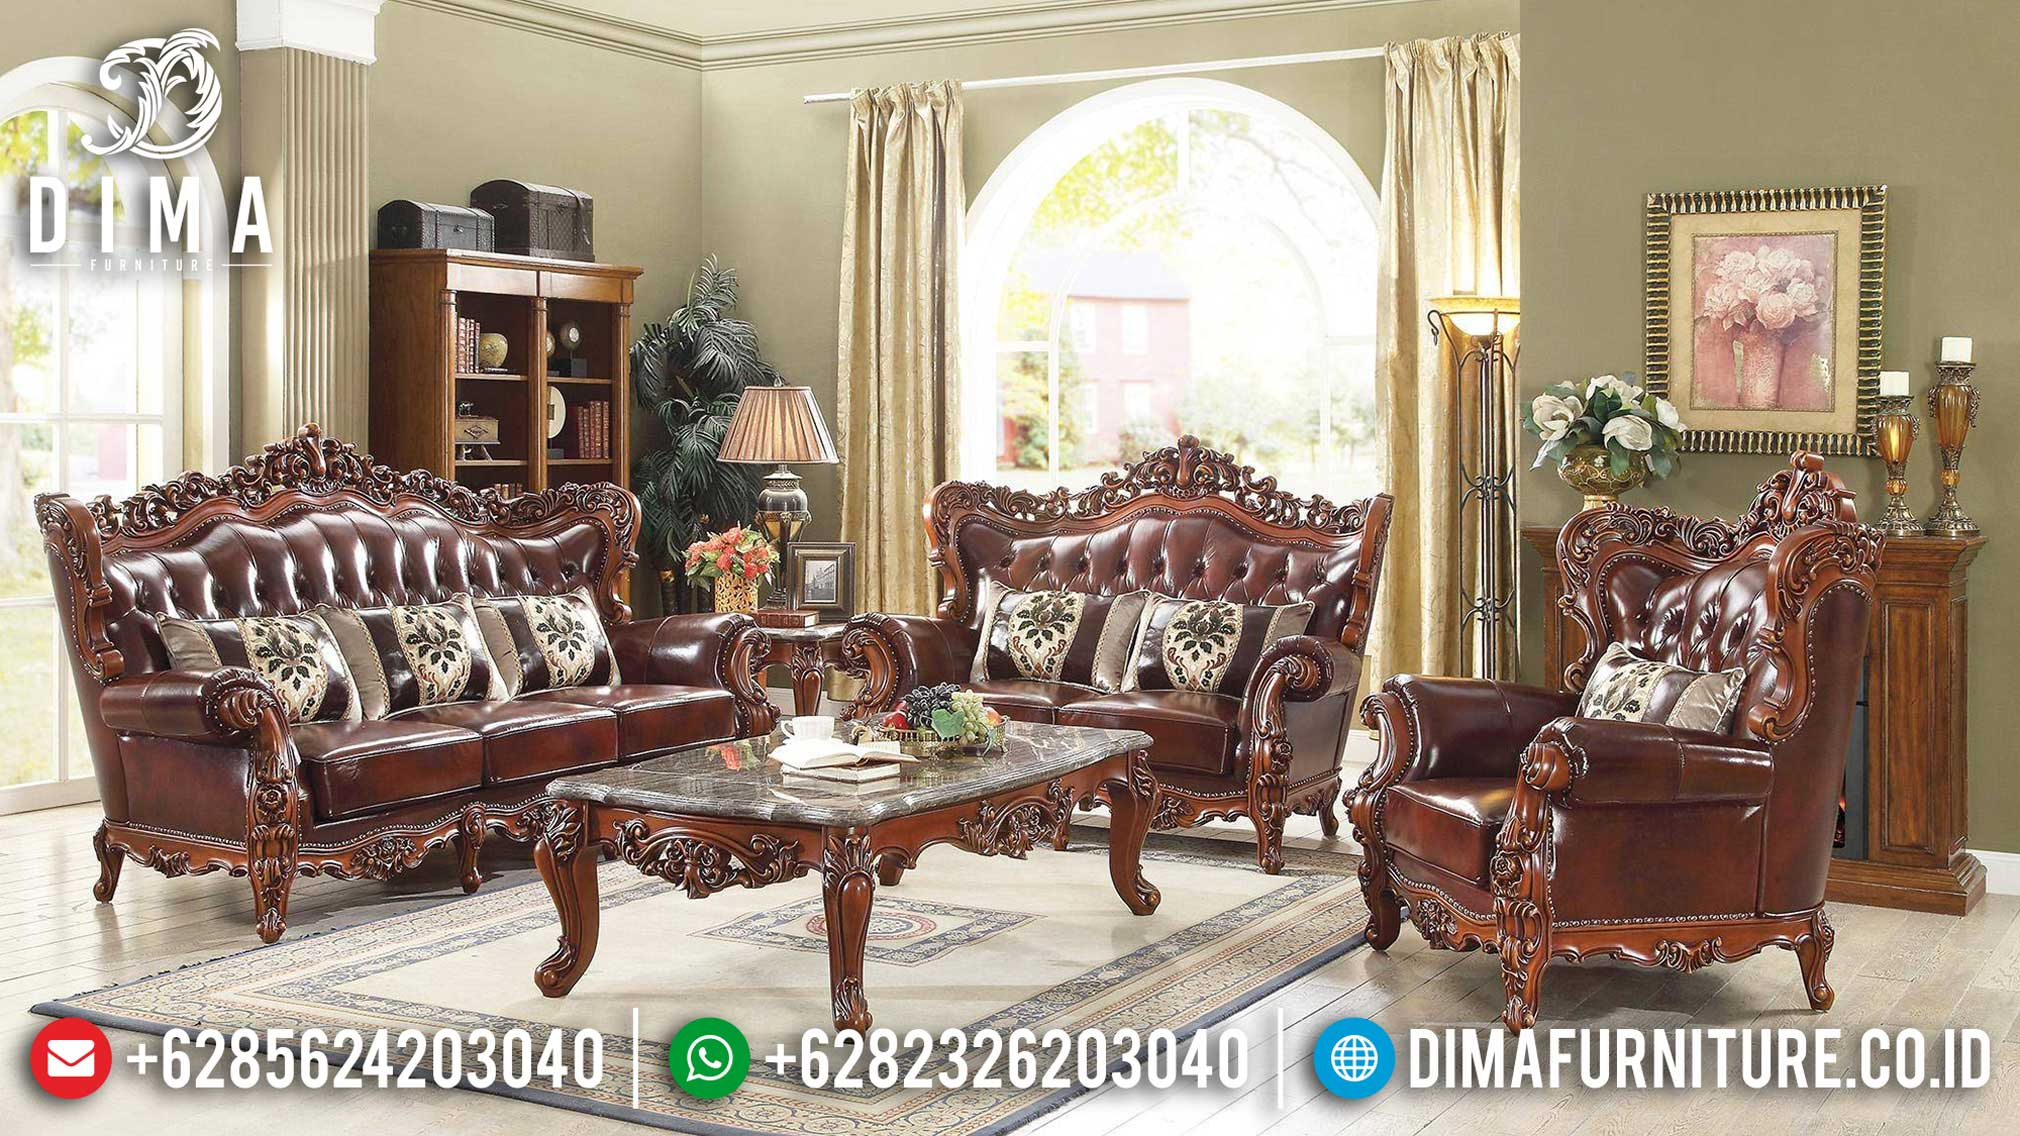 Sofa Tamu Jati Mewah Luxury Design Classic Interior Majestic MMJ-0937